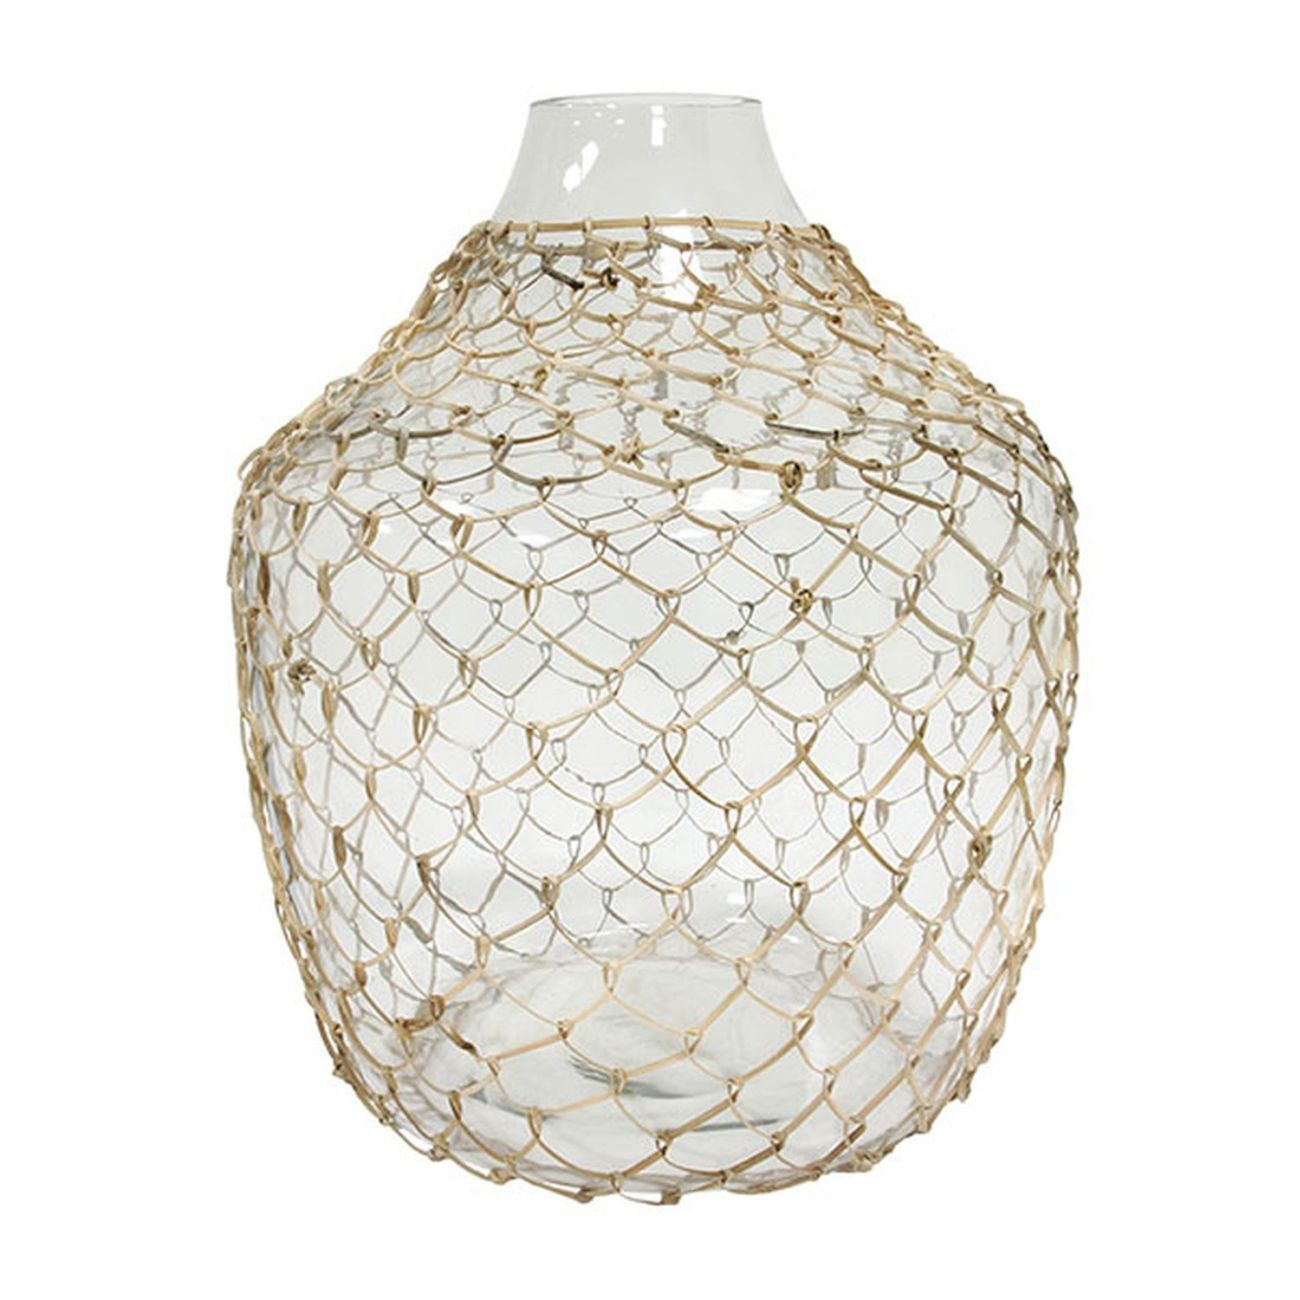 HK living wicker glass Vase